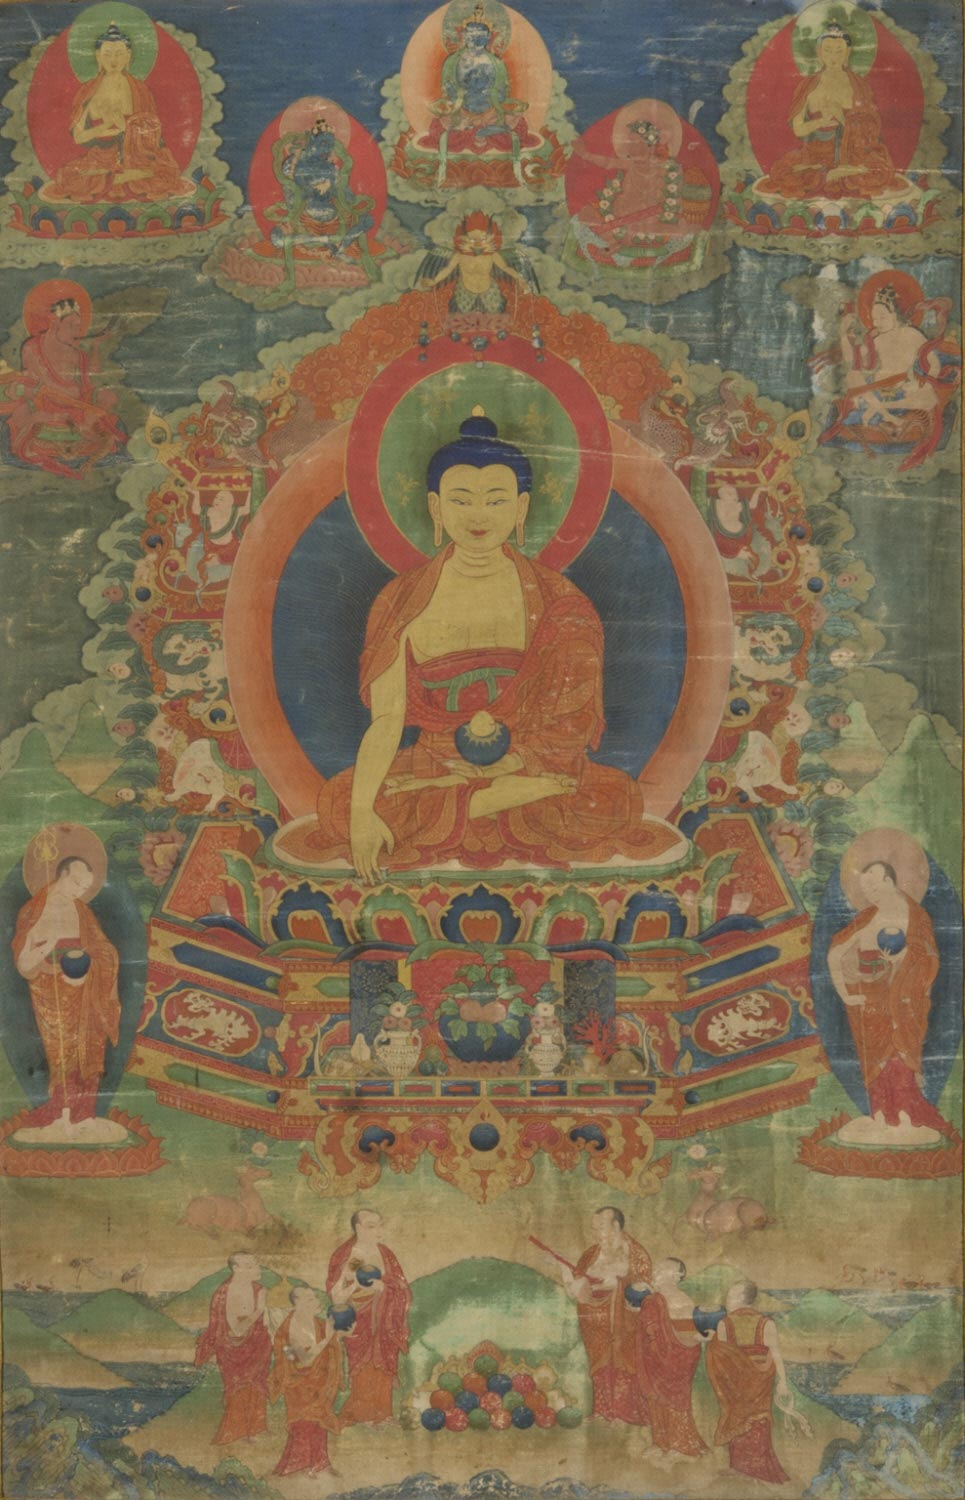 Buddhas of the Past, Present, and Future with Mahasiddhas and Monks